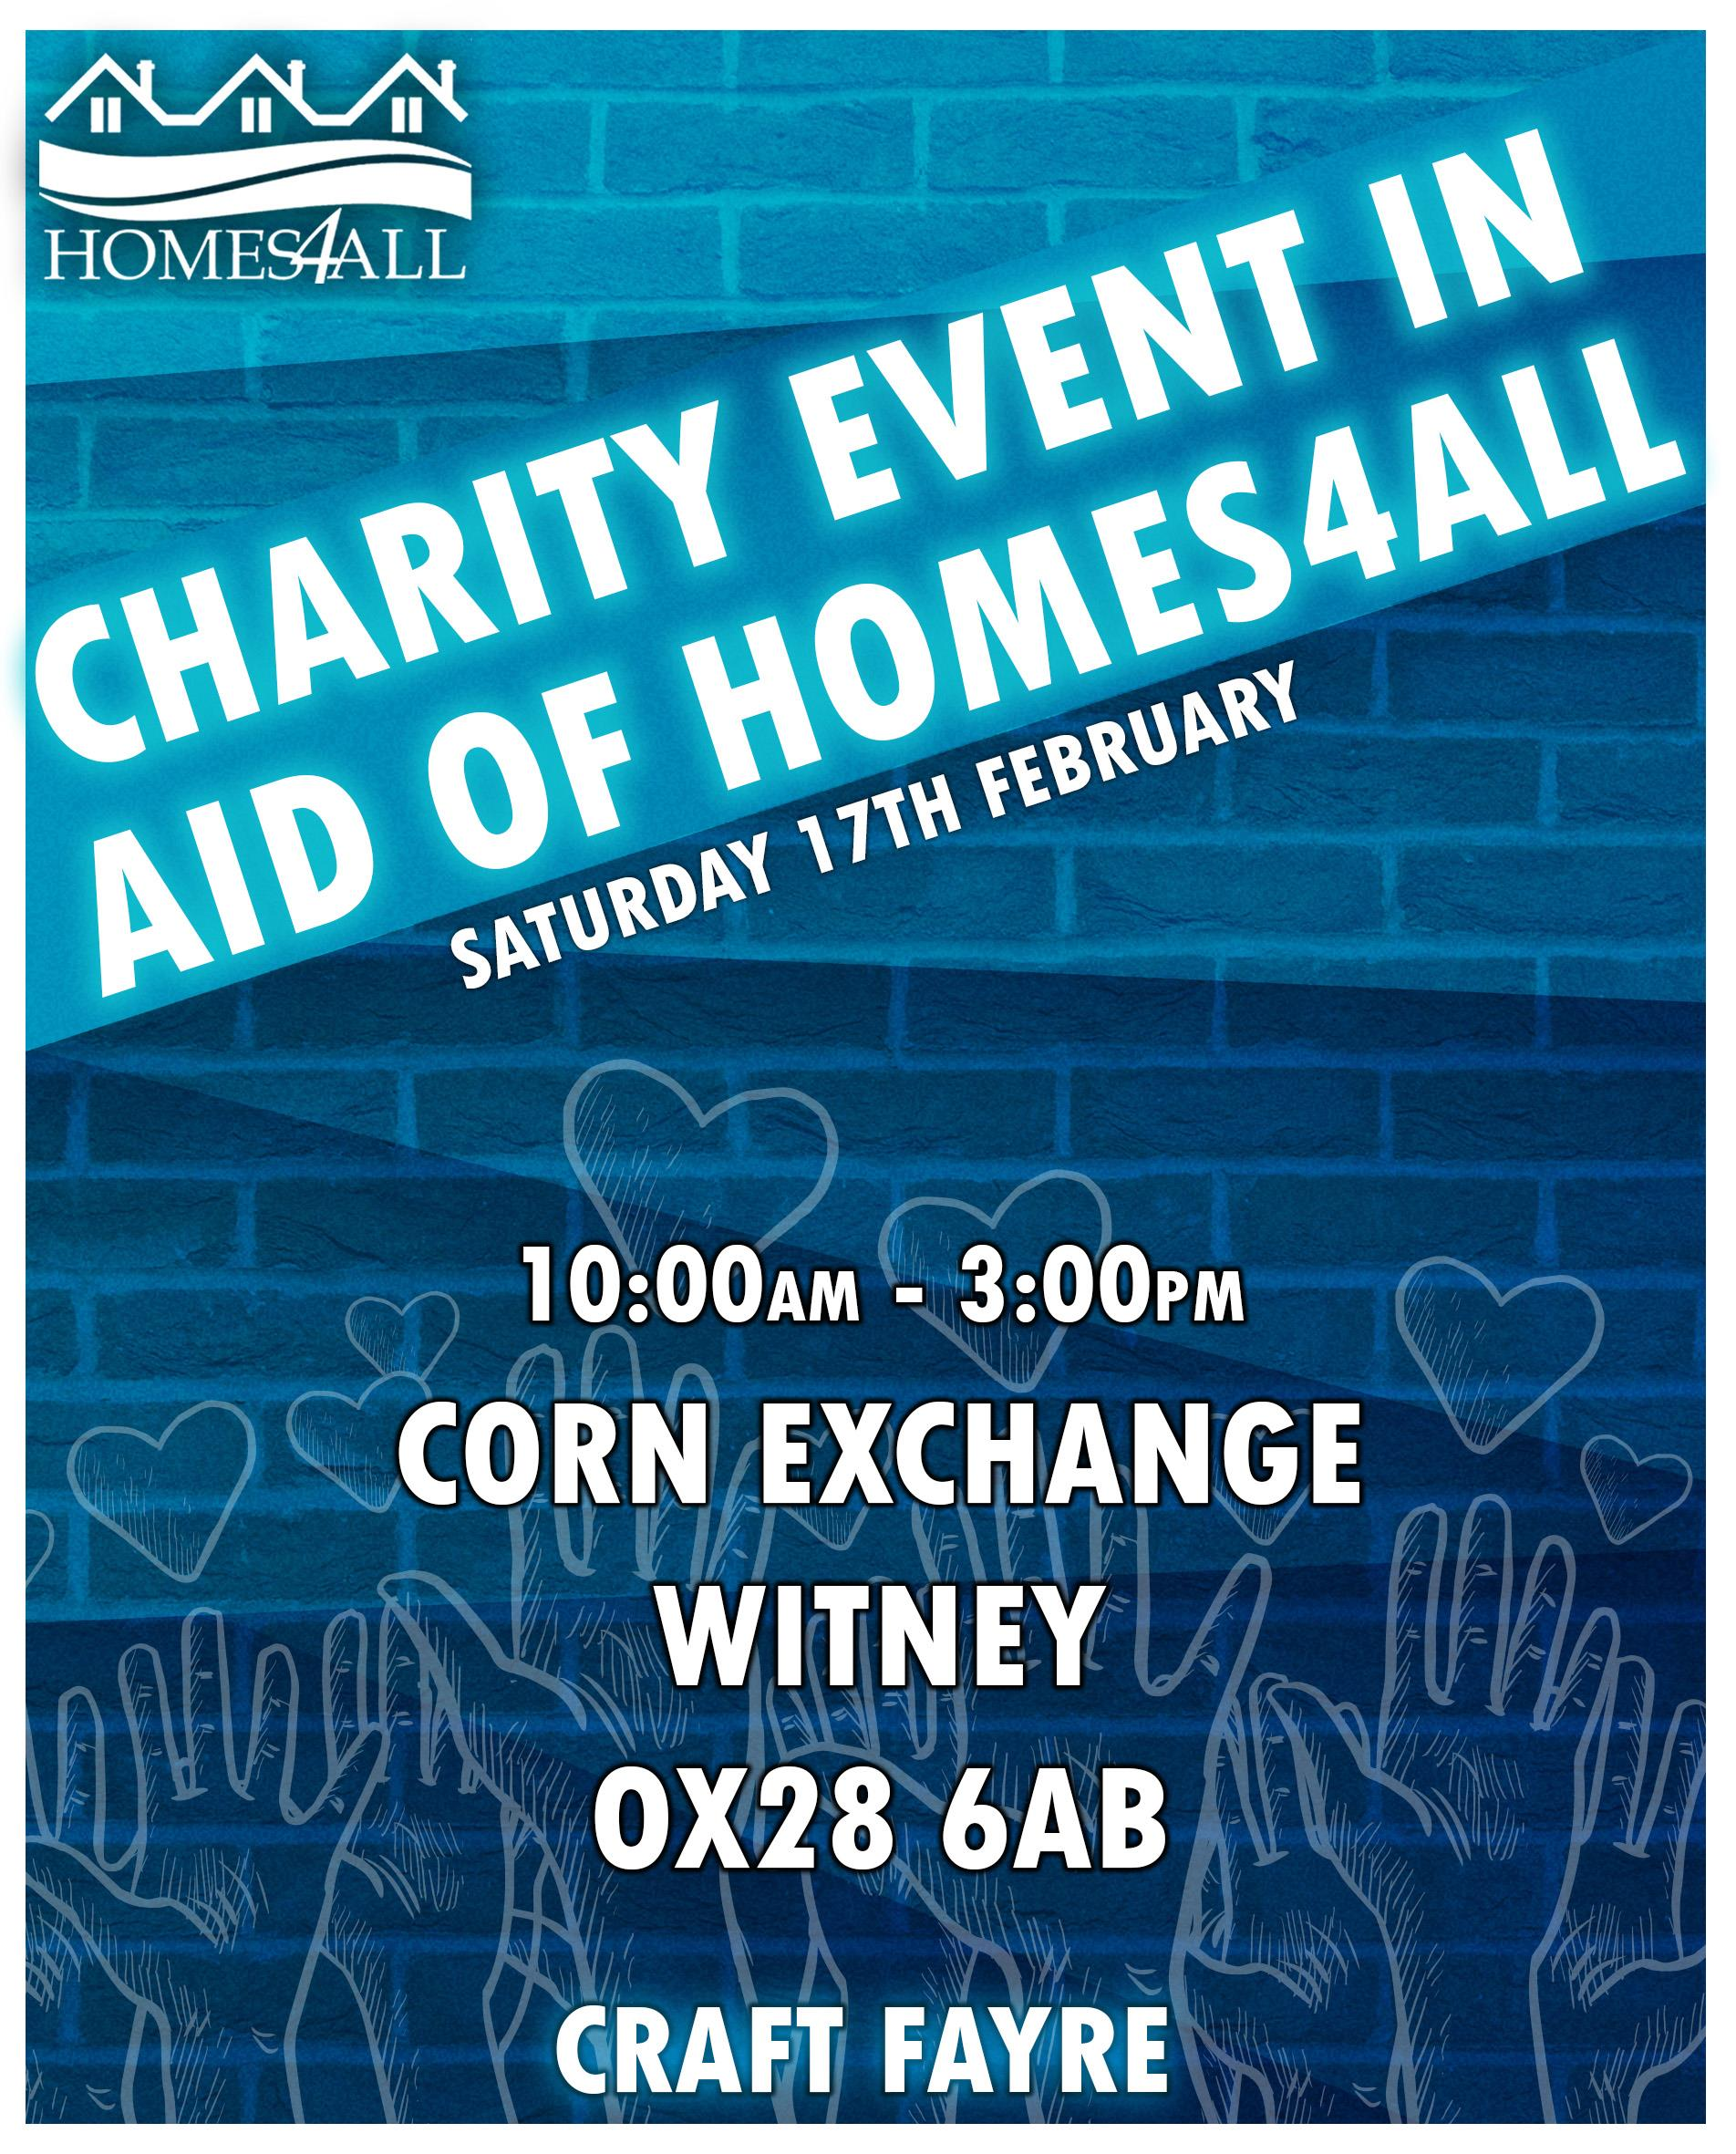 Homes4All Craft fayre